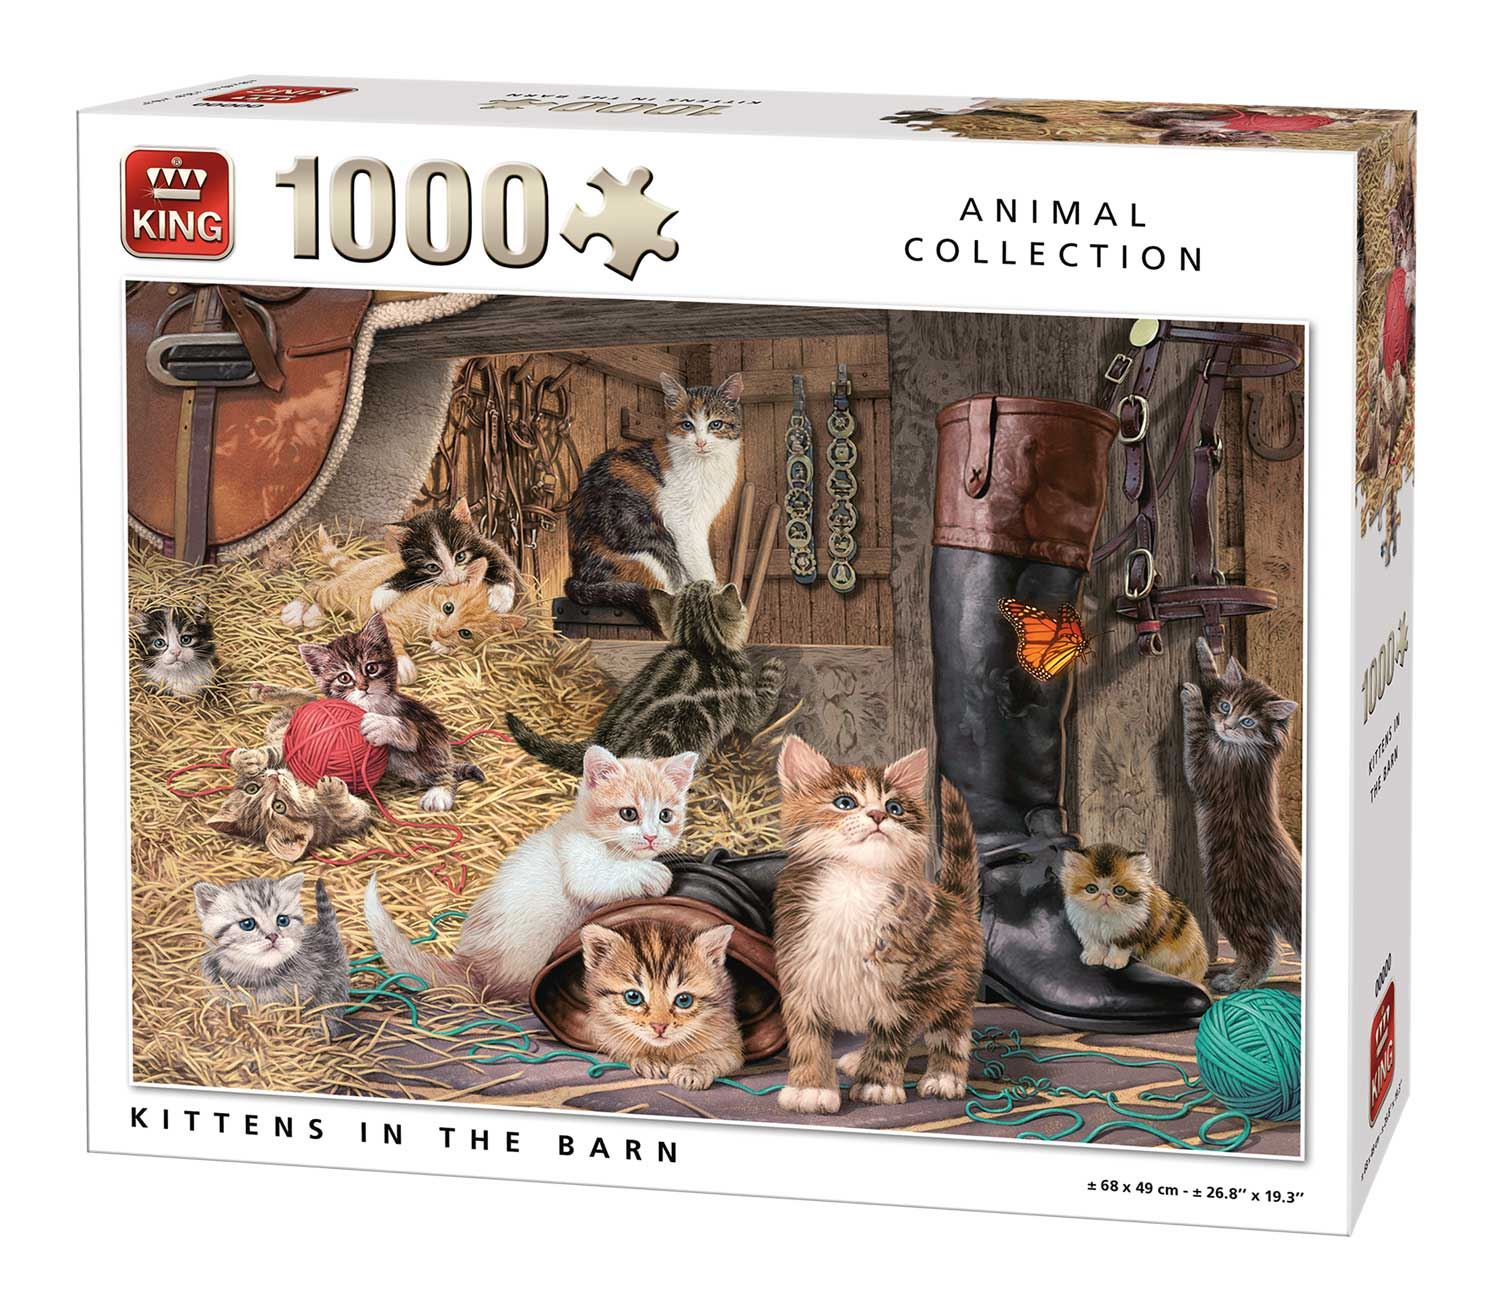 King Kittens In The Barn Jigsaw Puzzle (1000 Pieces)